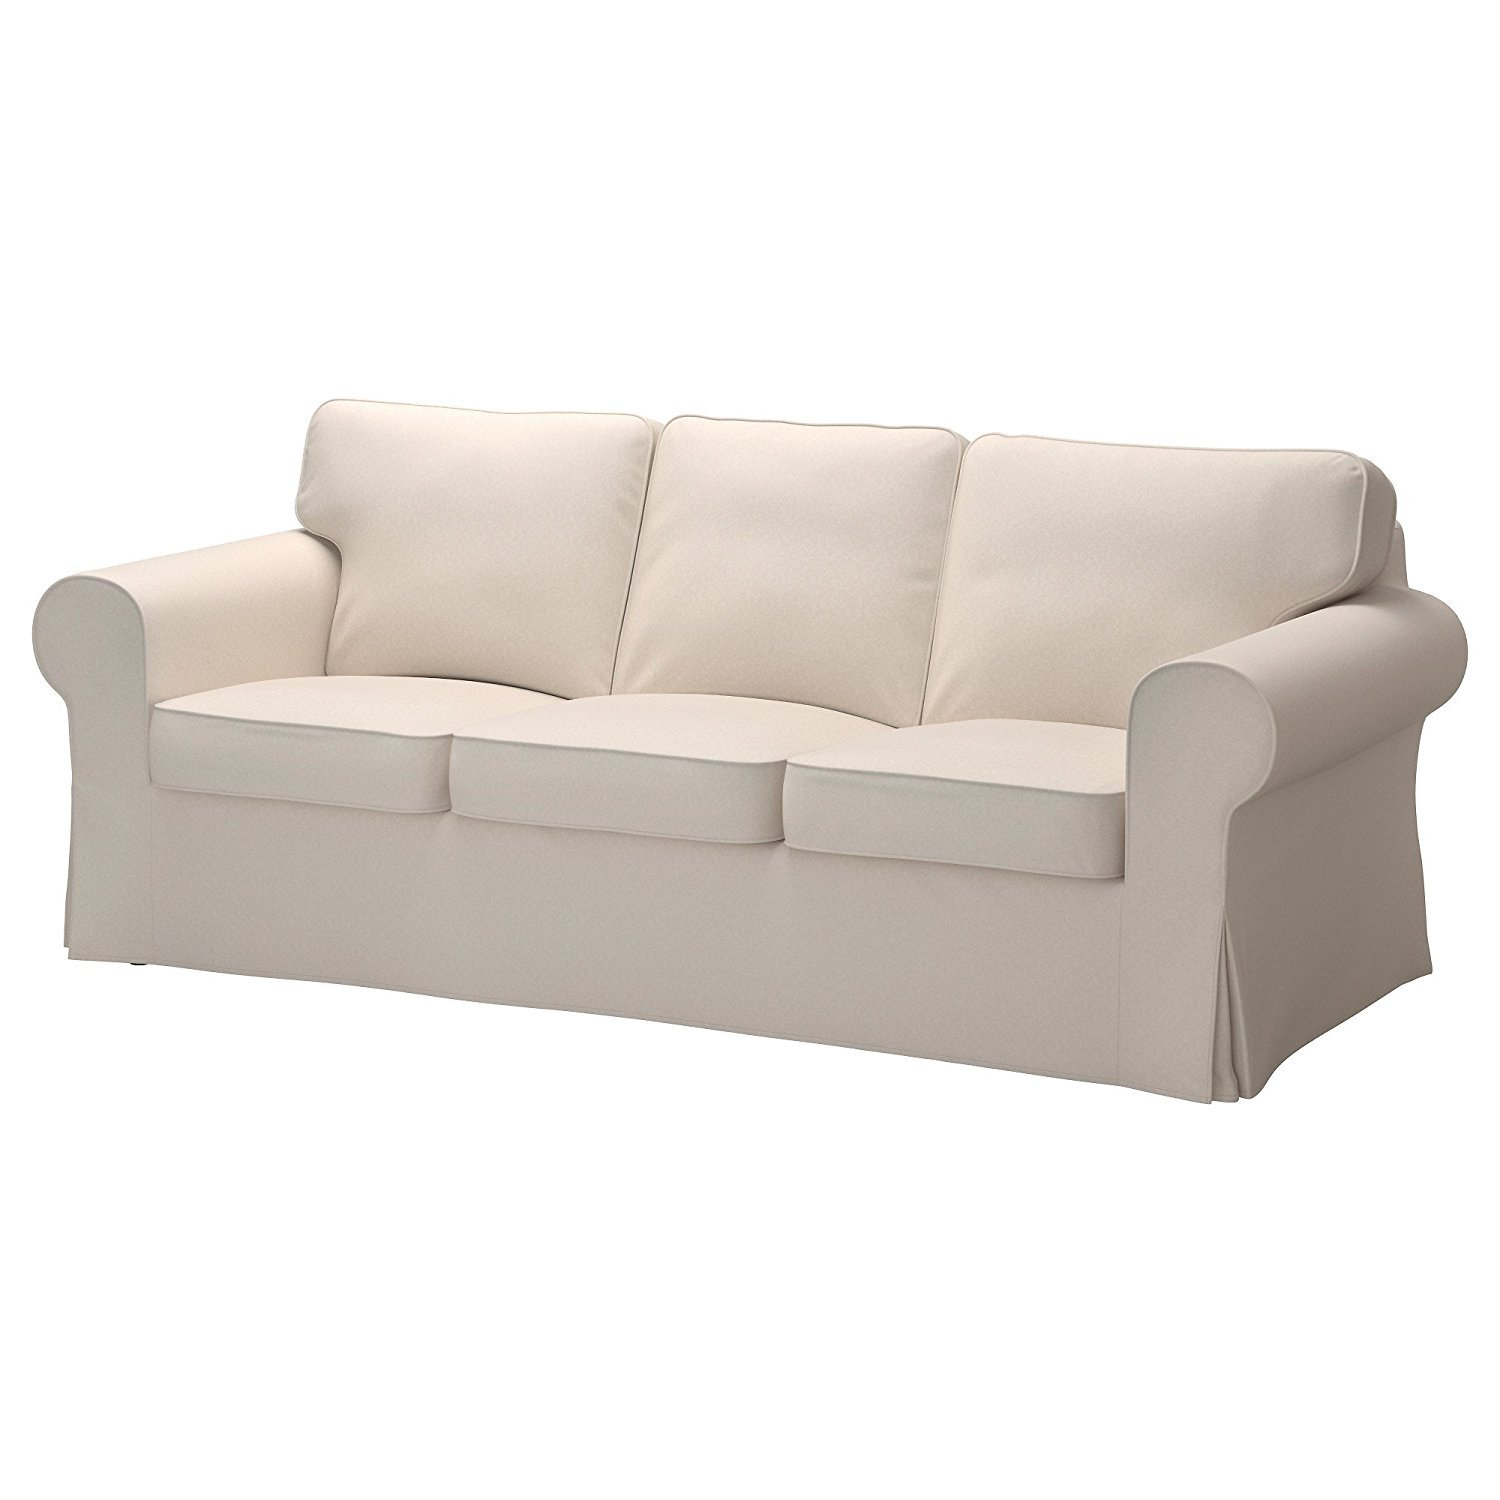 Replacement Cover for IKEA Ektorp 3-seat Sofa without Chaise , Lofallet Beige (does NOT fit Ektorp 3.5-seat Sofa): Industrial & Scientific